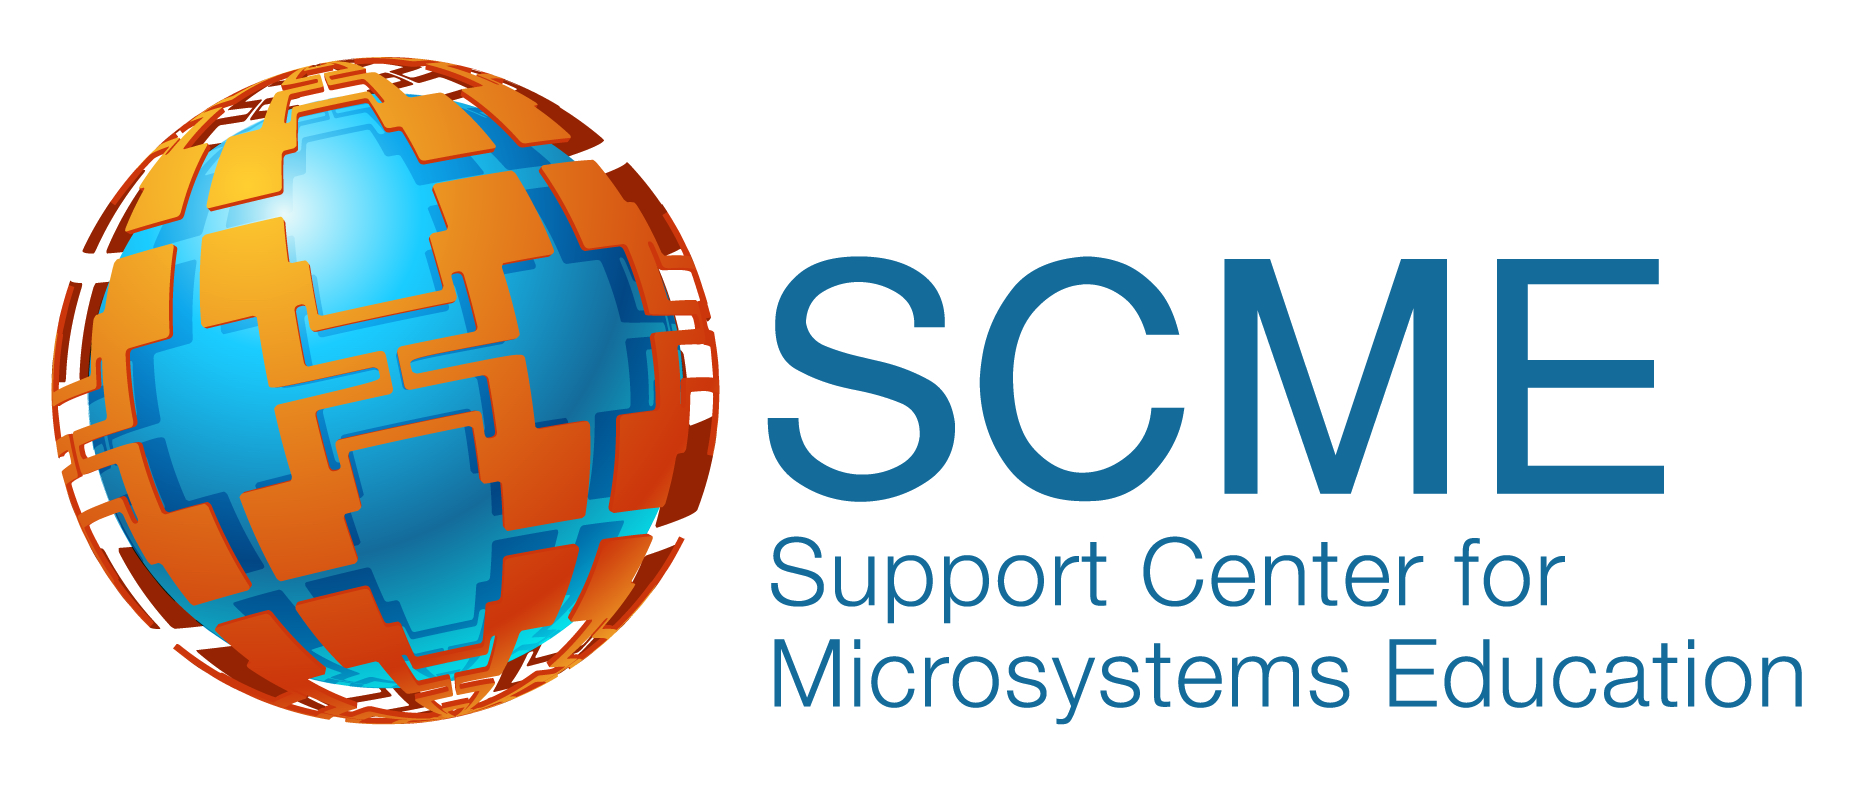 Support Center for Microsystems Education (SCME) group image